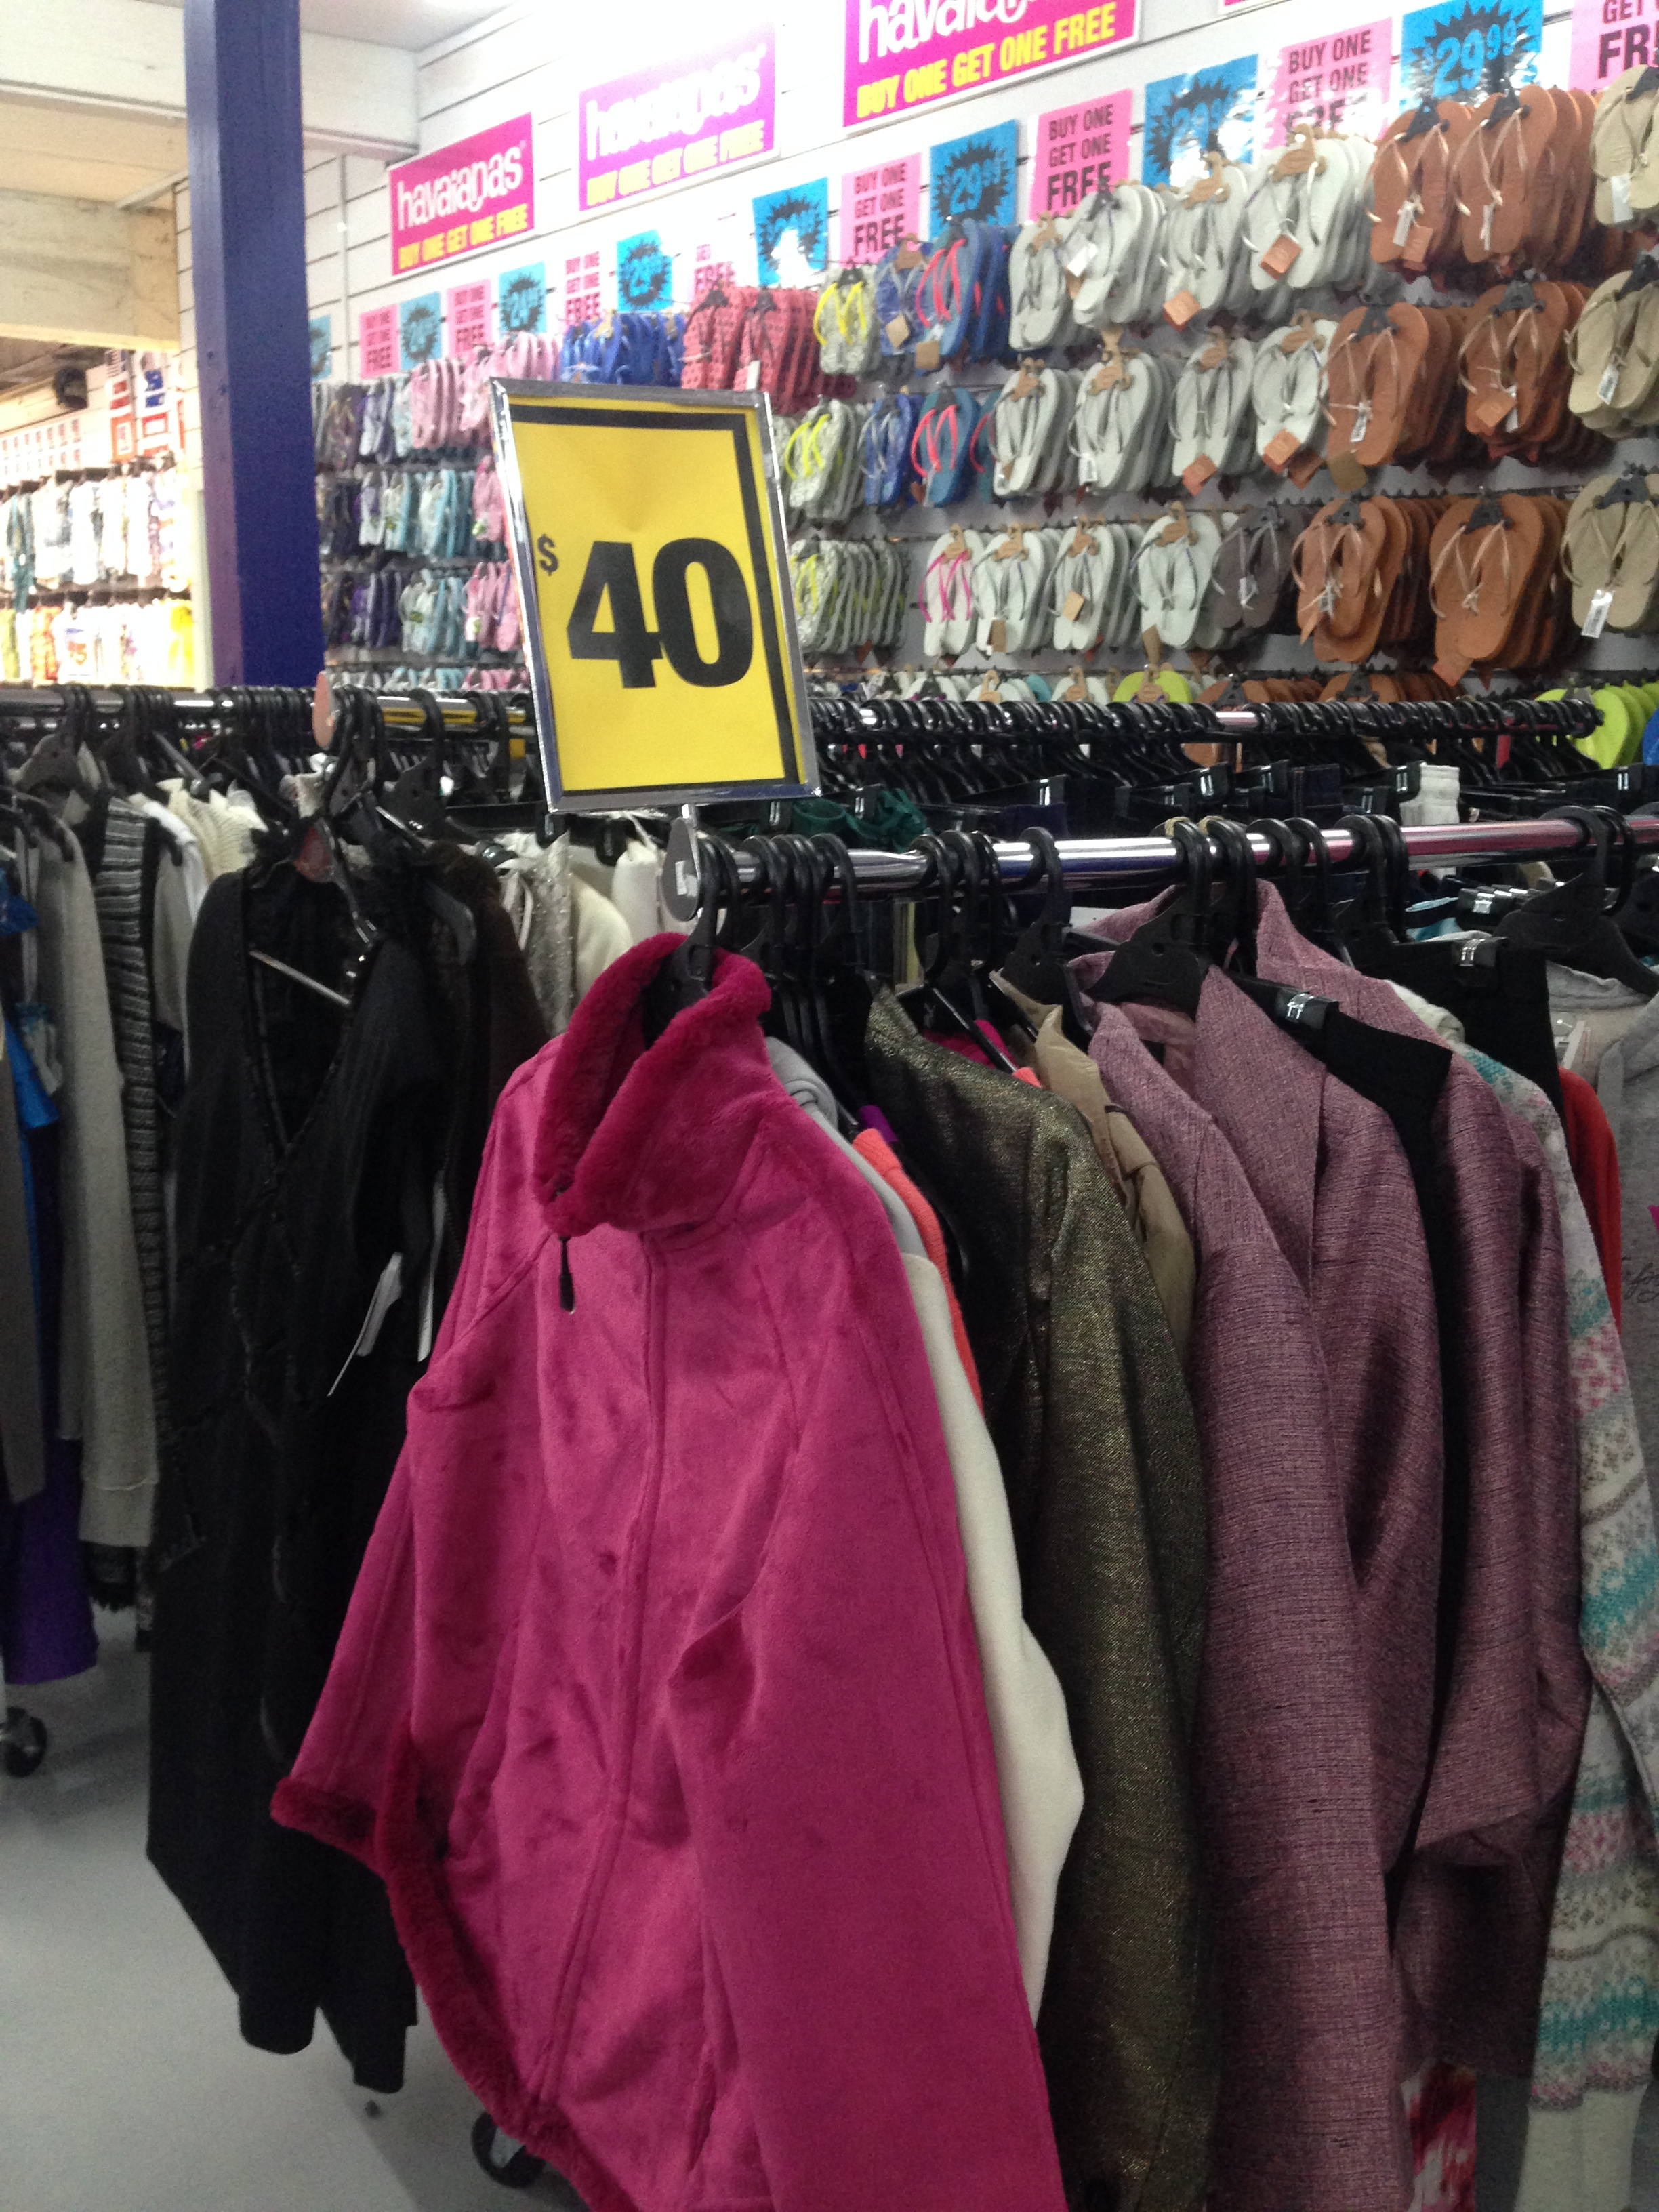 Clothing warehouses online